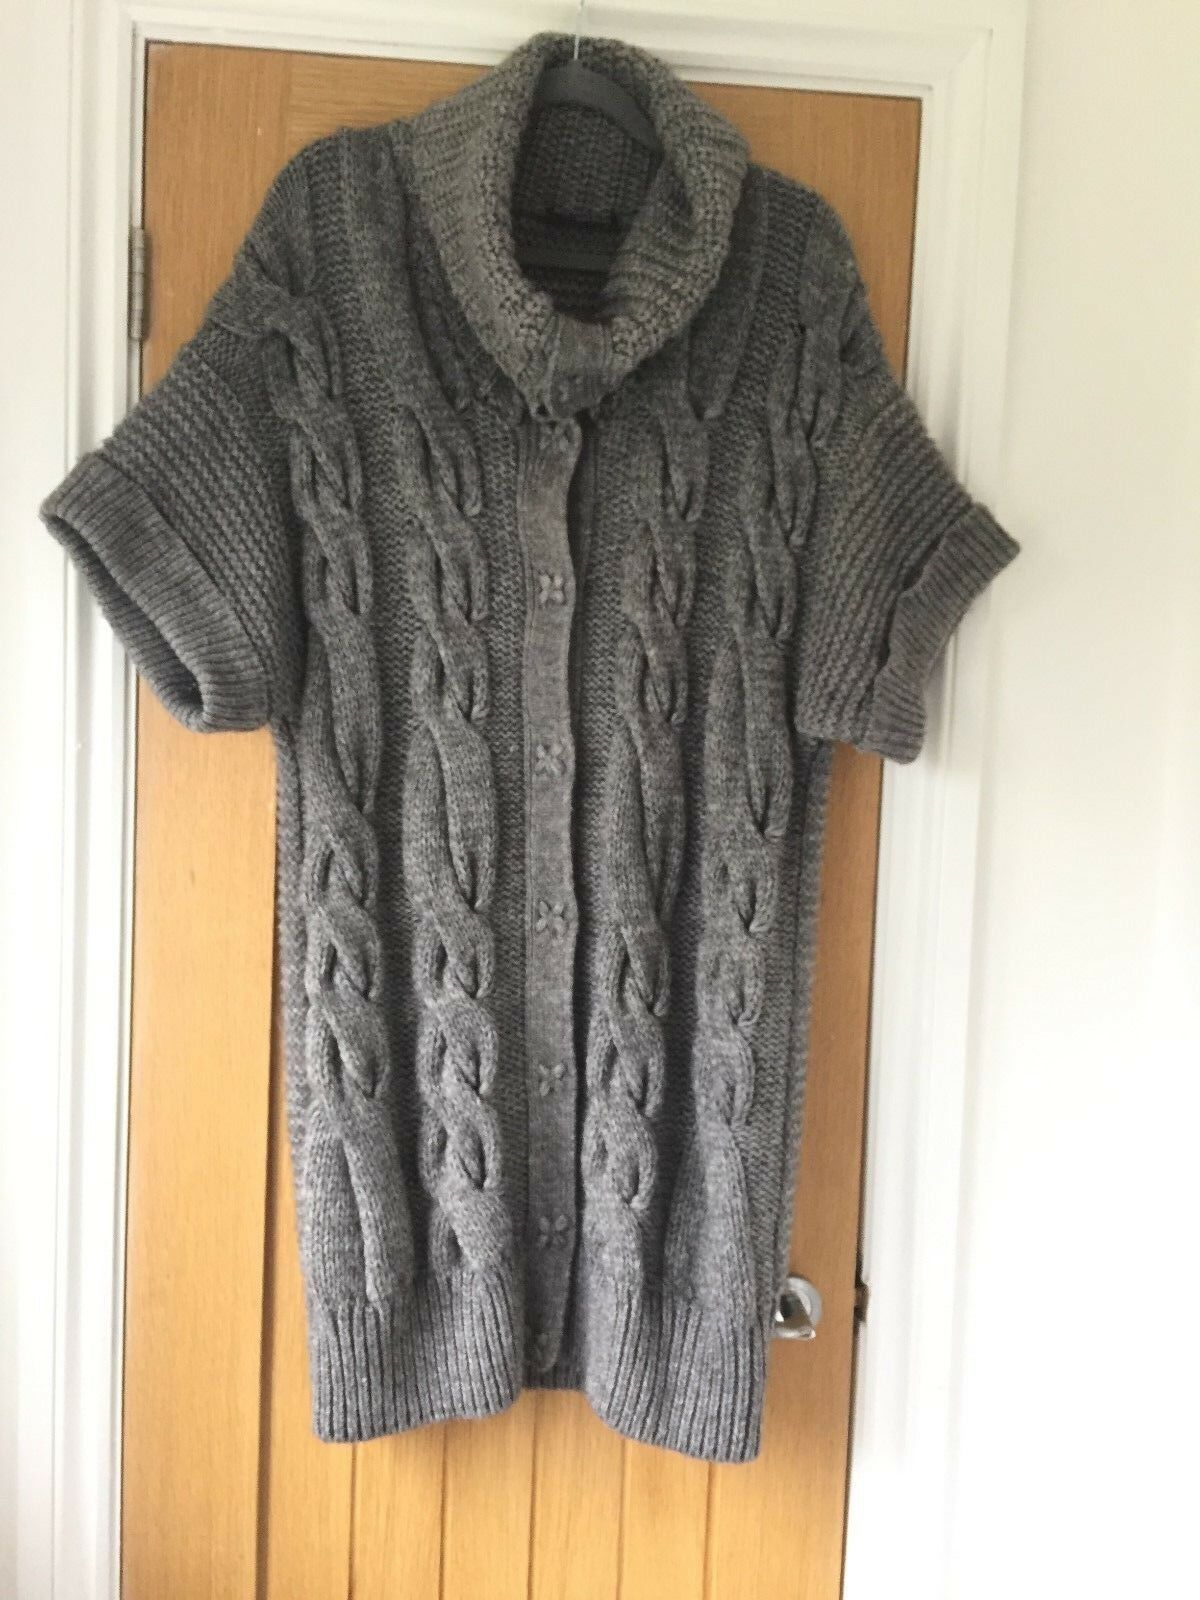 M&S M&S M&S Autograph chunky cable knit alpaca wool long grey maxi cardigan - 12-14 2c3444